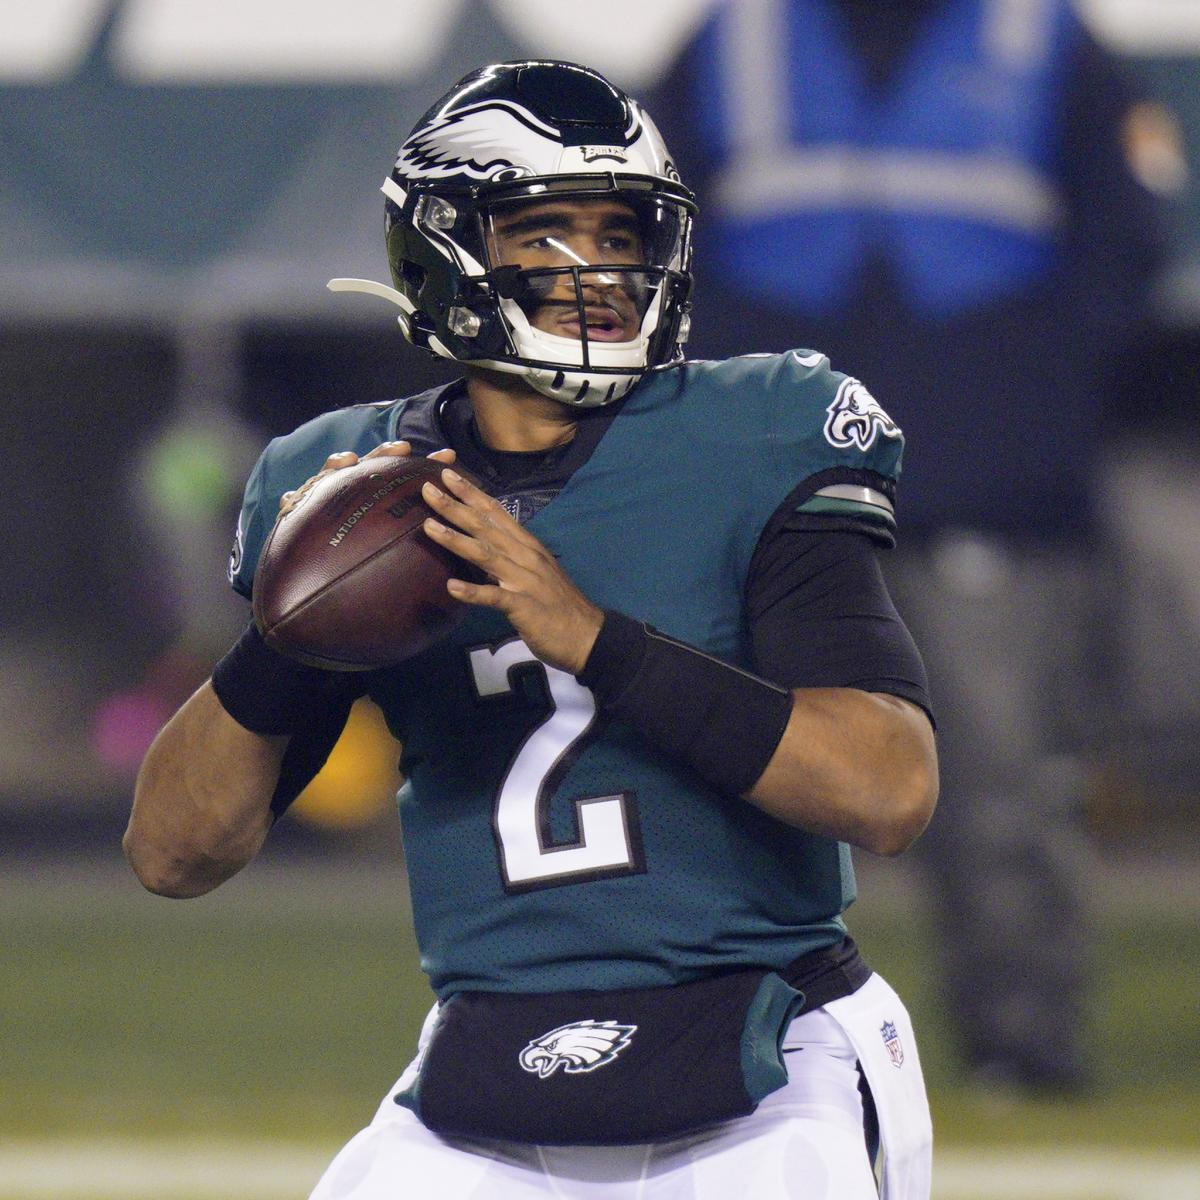 eagles-must-drag-all-in-on-jalen-hurts-in-2021-and-rethink-qb-next-365-days.jpg